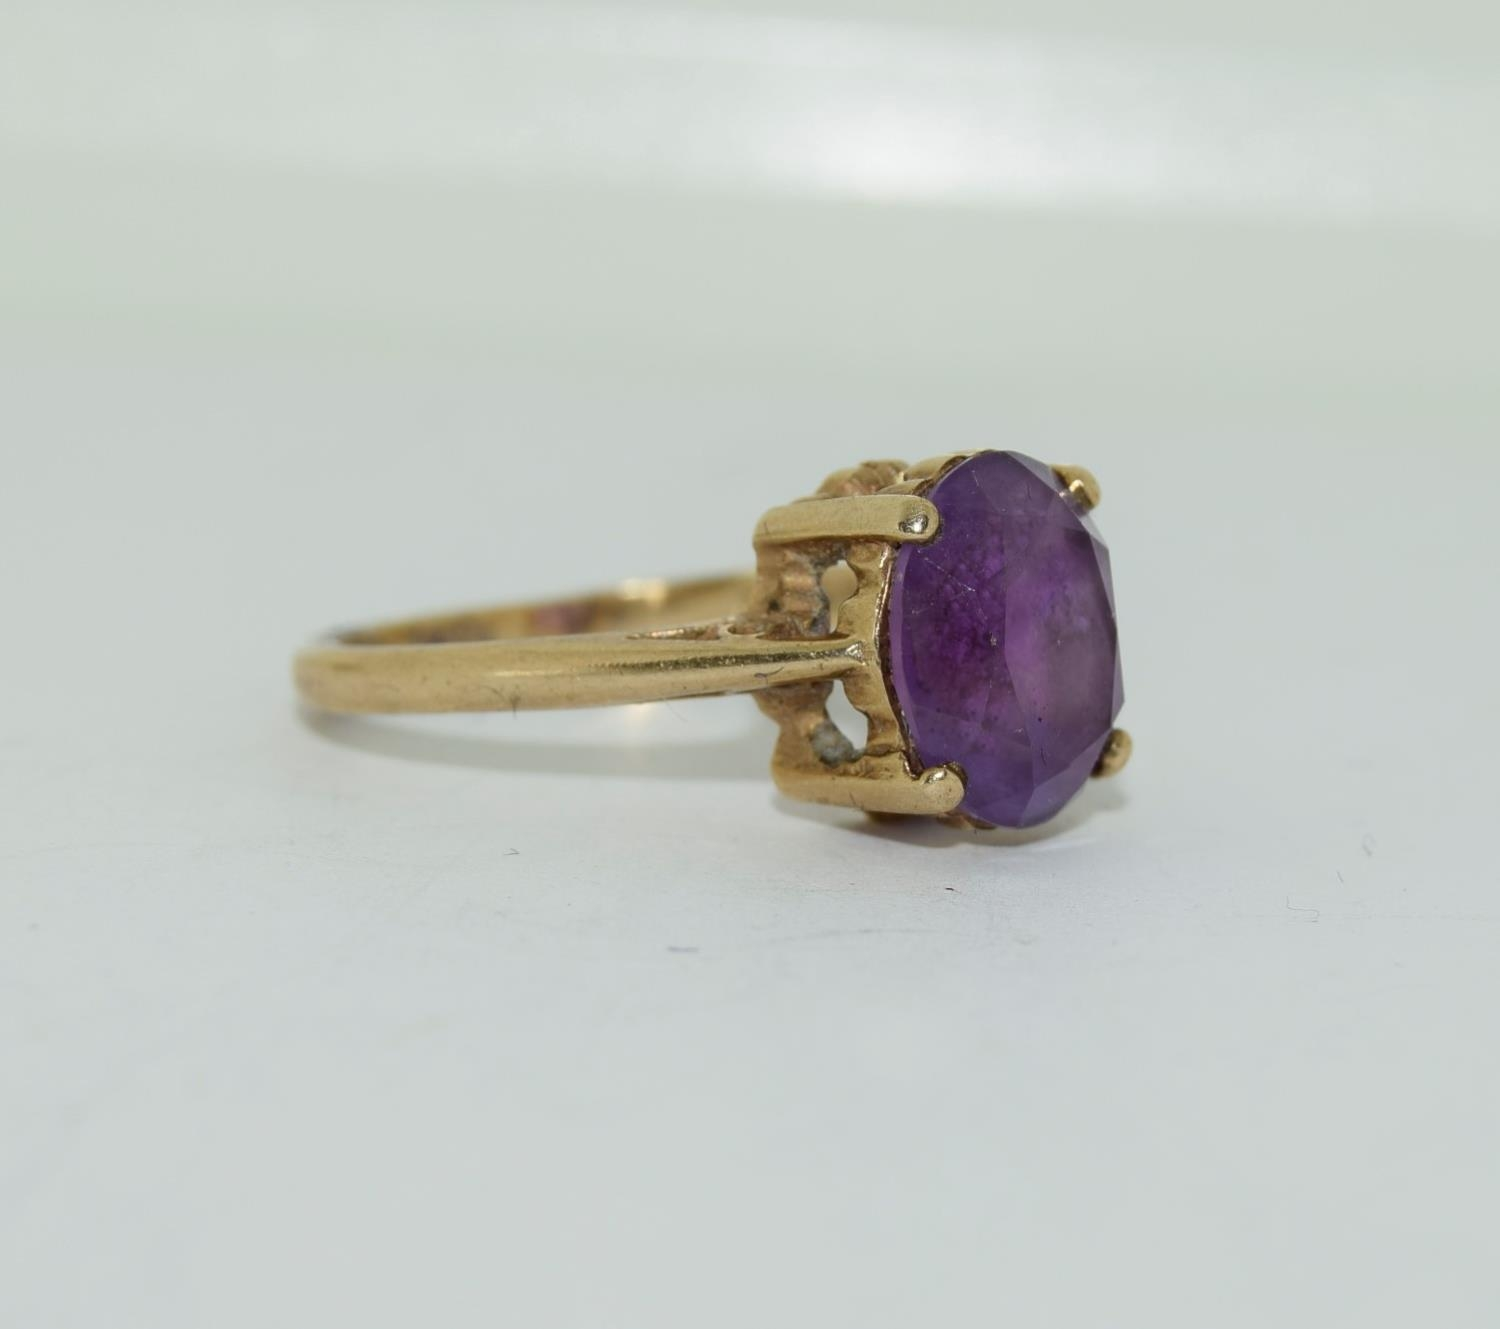 9ct gold ladies Amethyst ring size N - Image 10 of 12